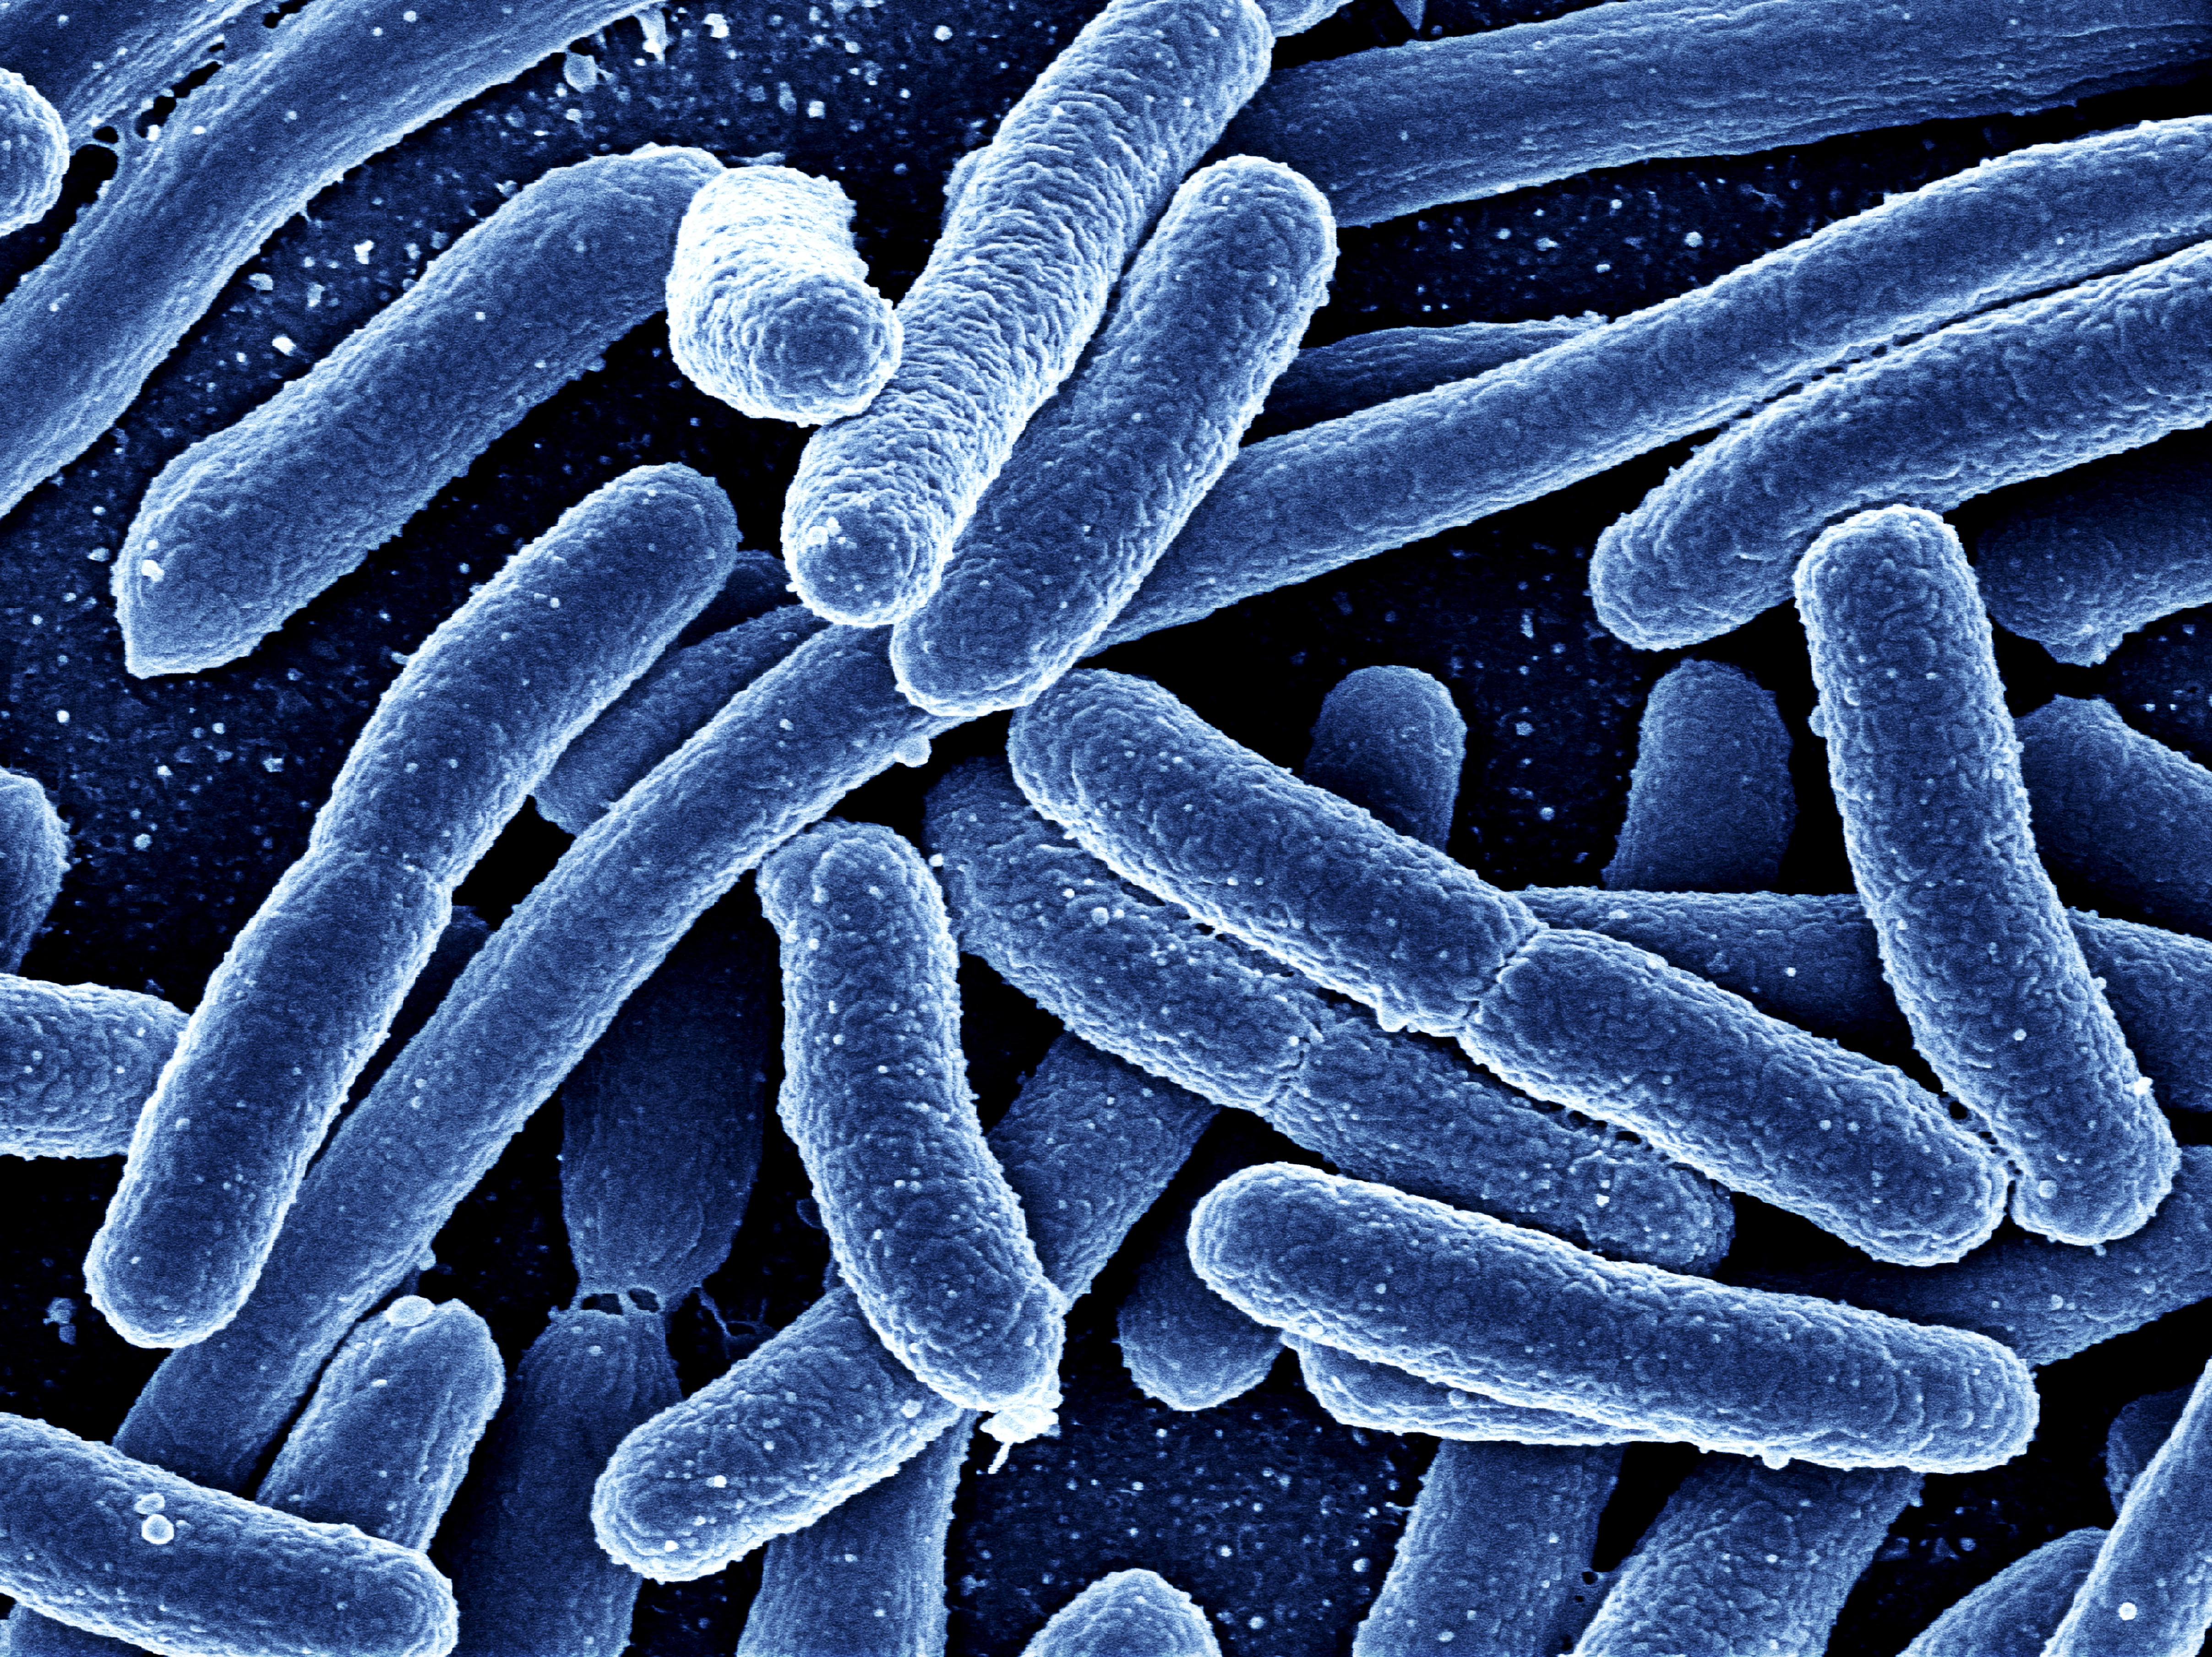 Just one of the many bacteria living in your body.